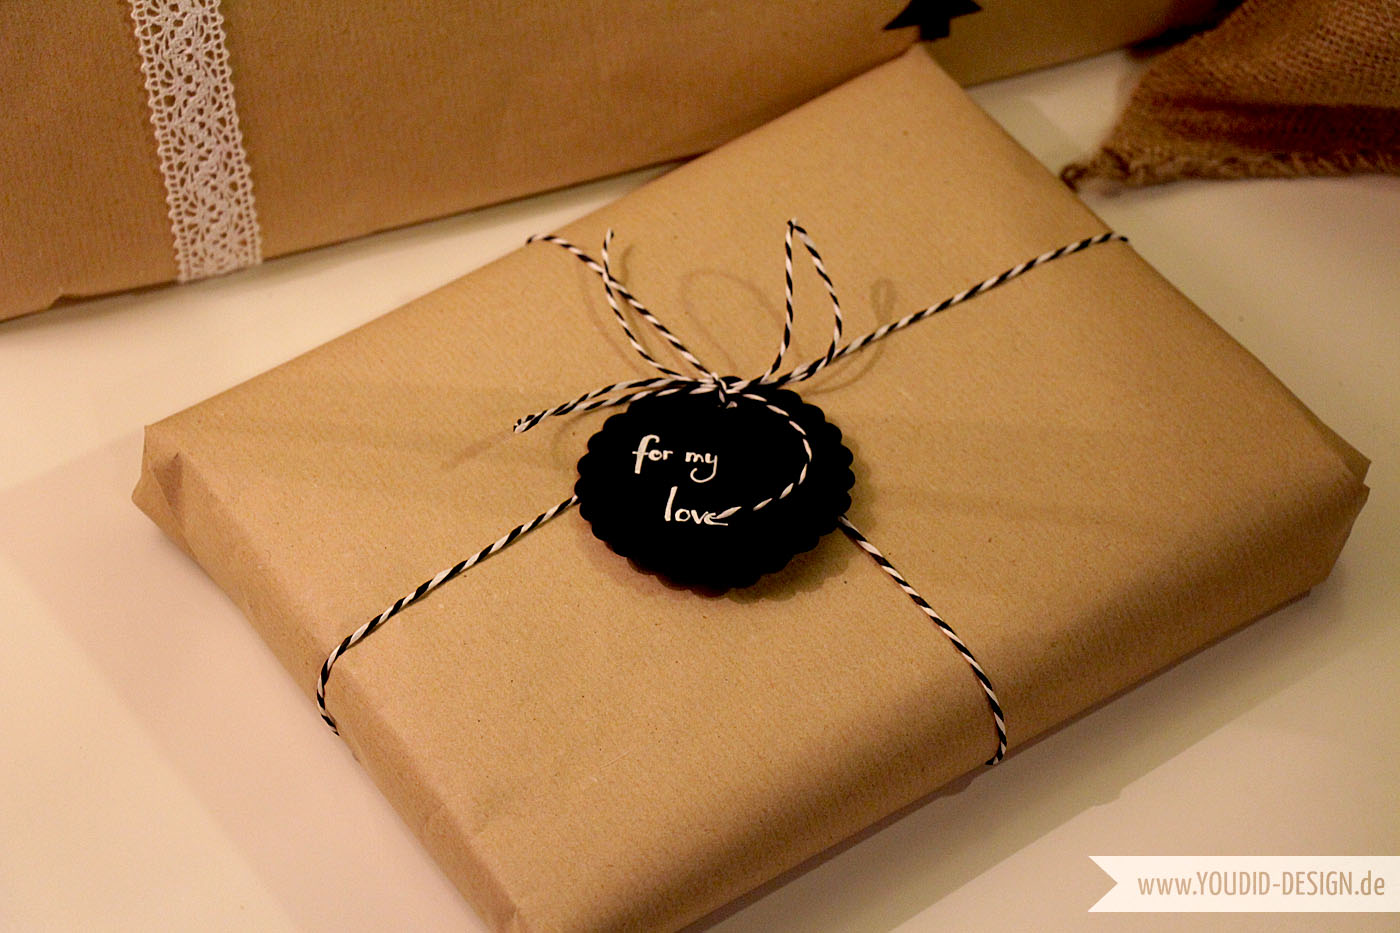 Gift Wrapping Ideas | www.youdid-design.de